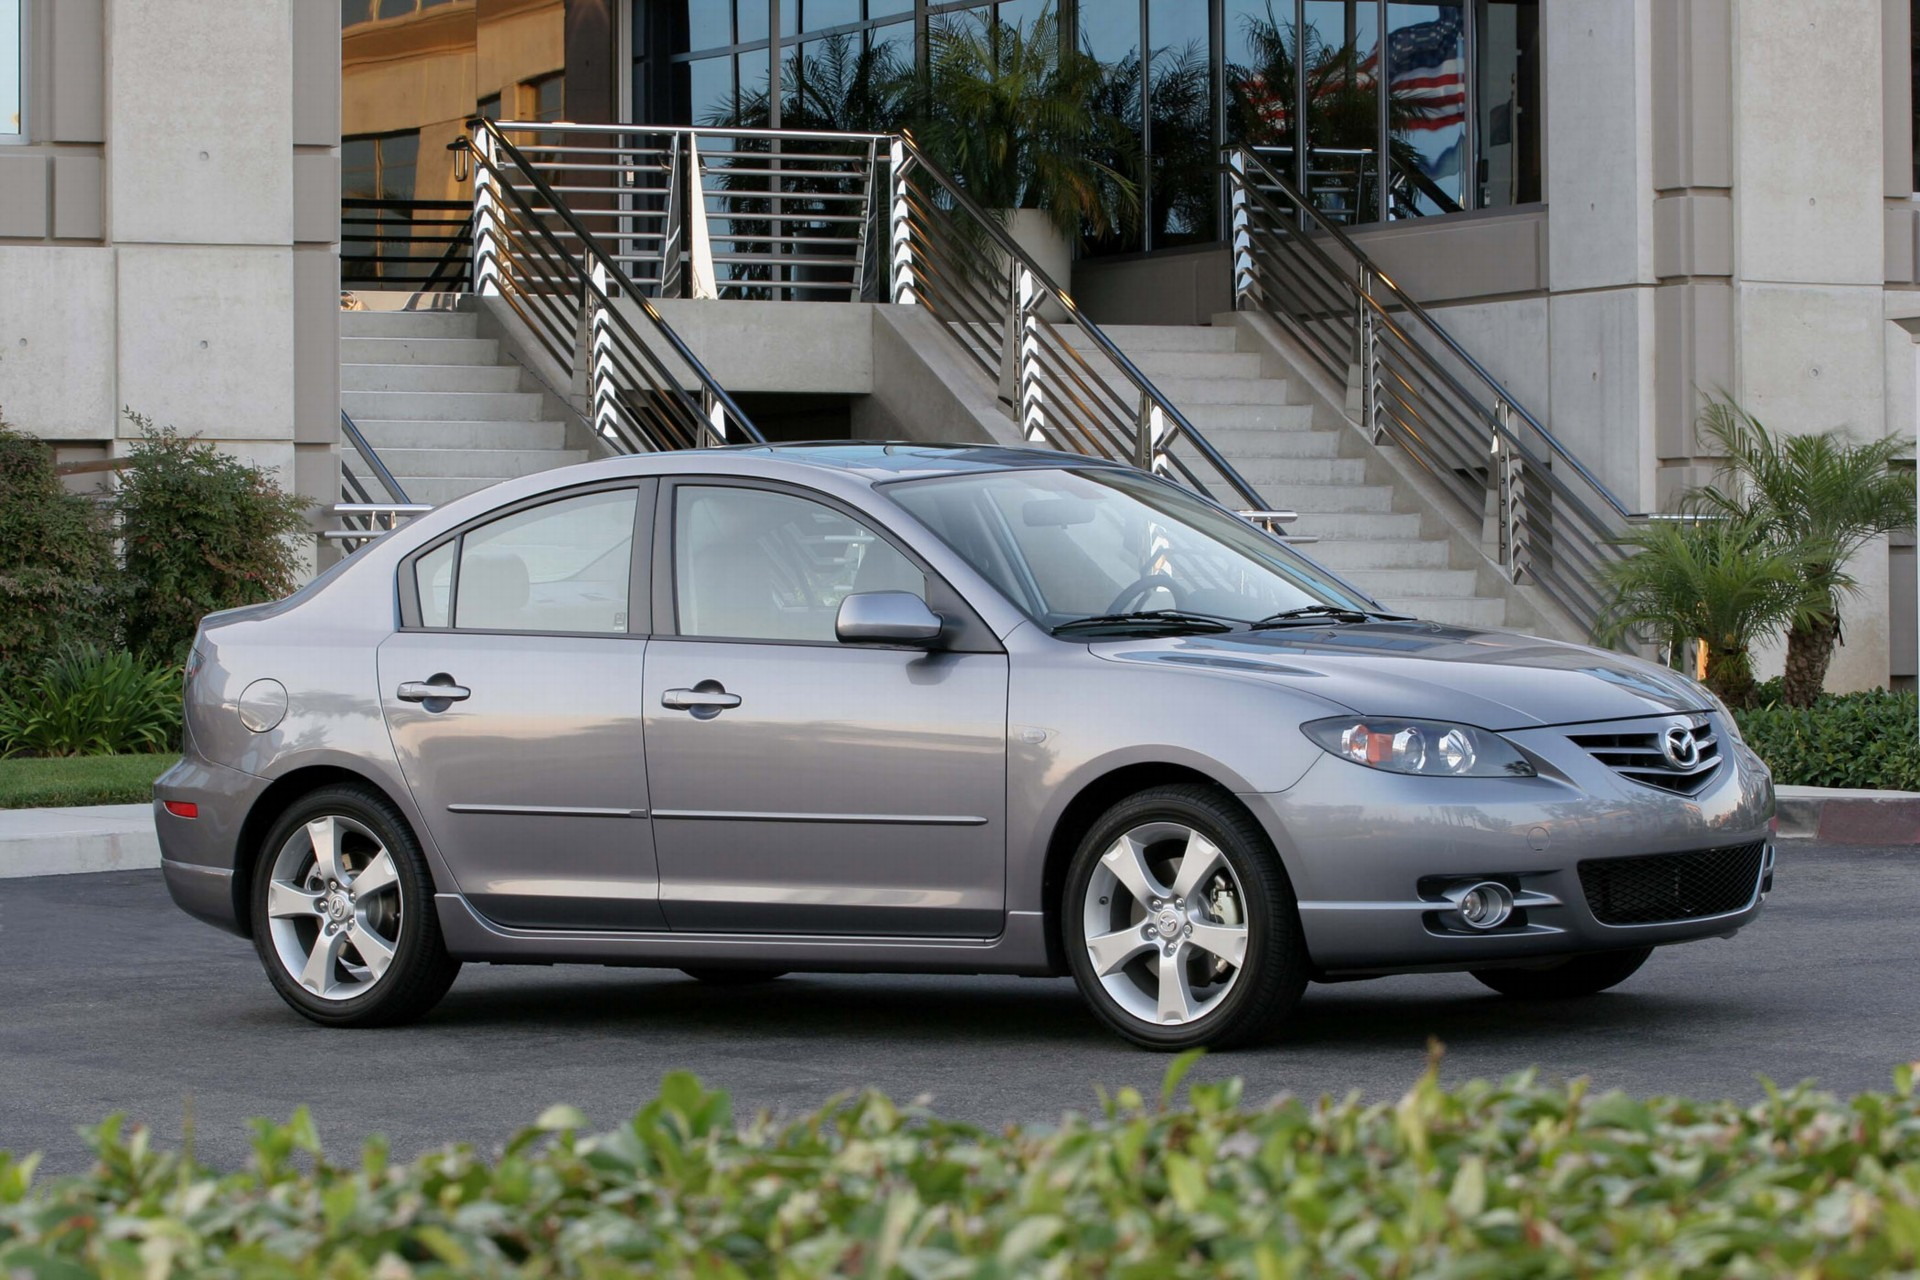 2007 mazda 3 pictures, history, value, research, news